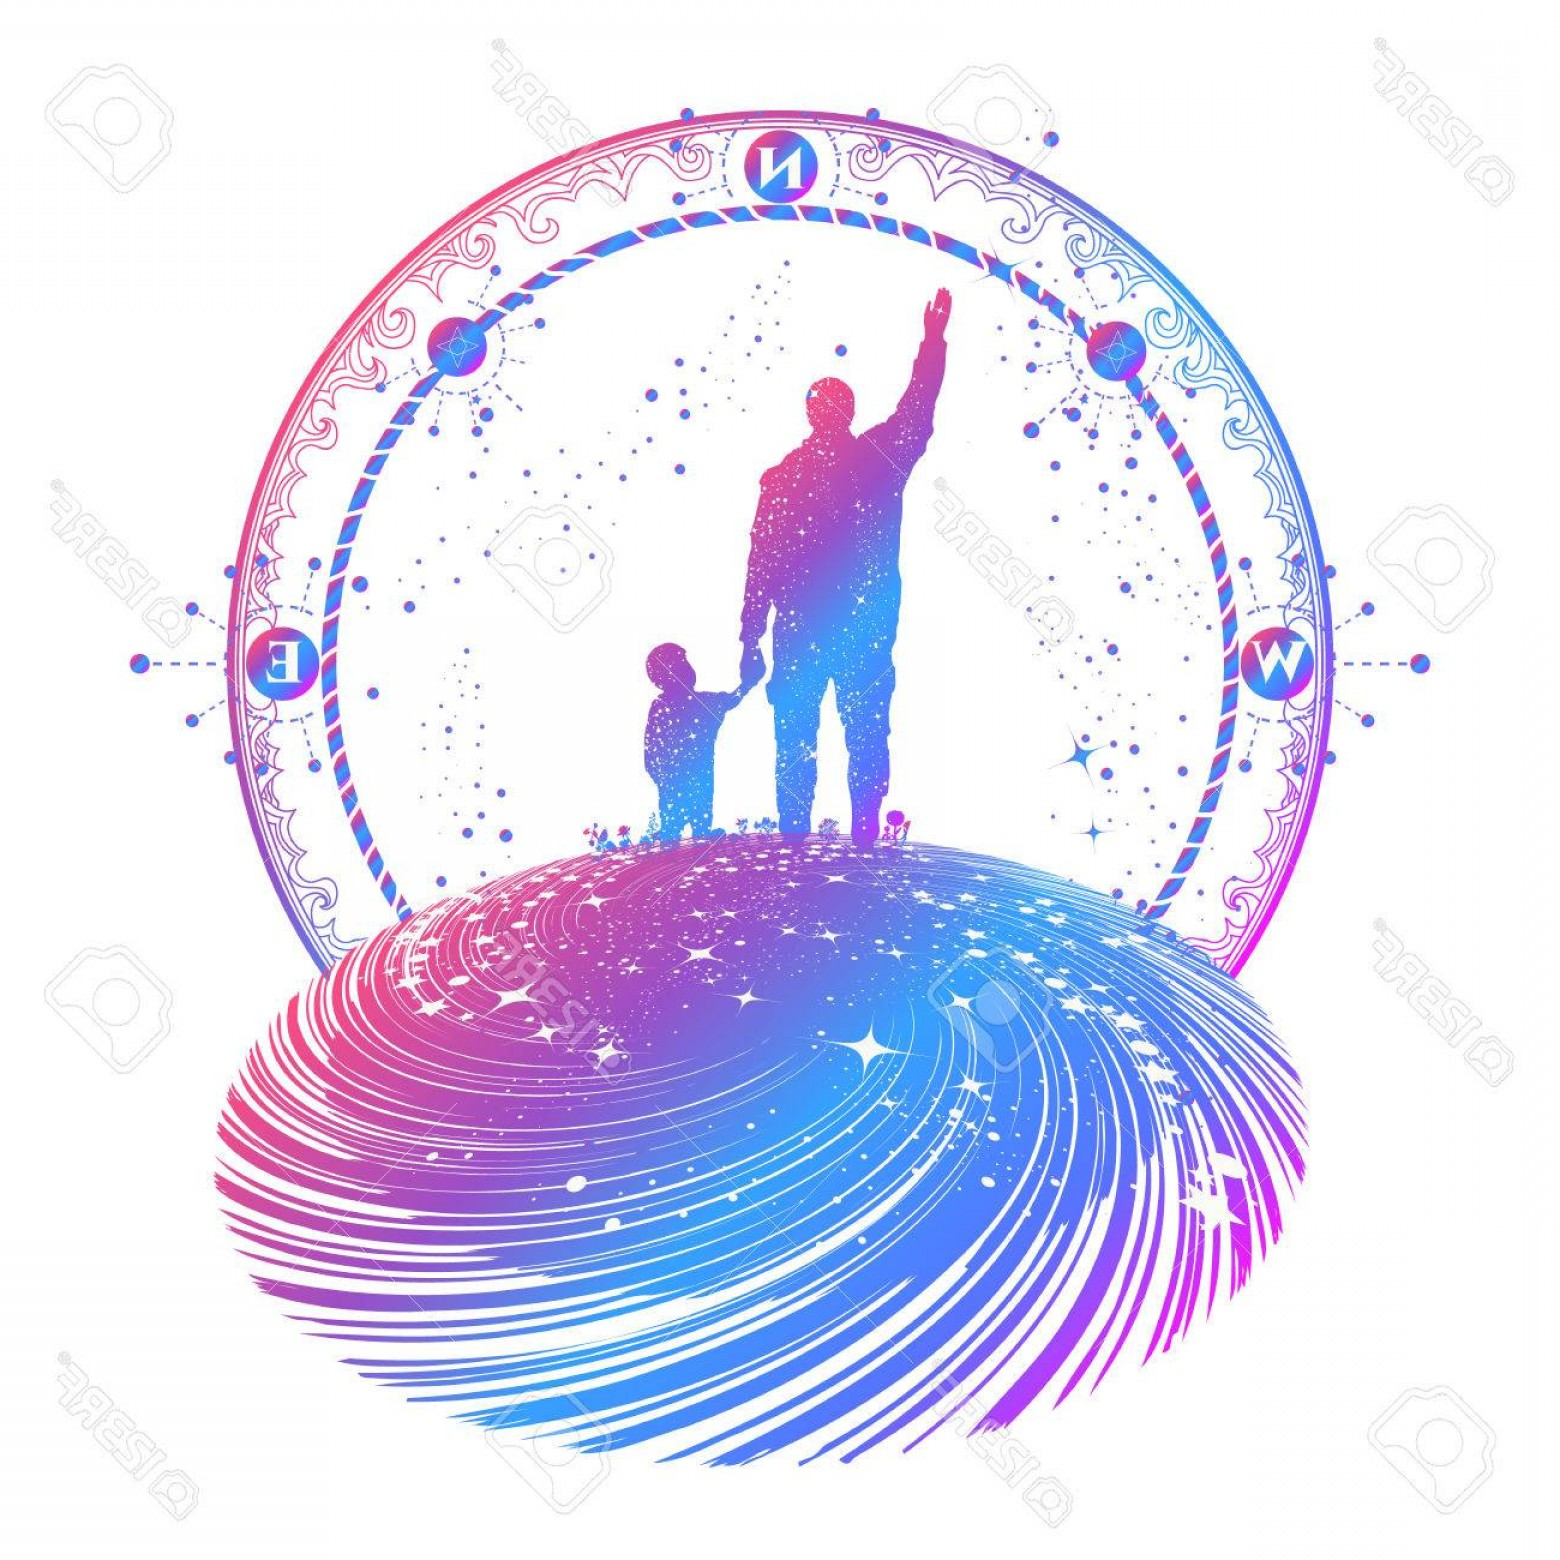 Sacred Heart Vector Genius: Photostock Vector Father And Son Color Tattoo Art Happy Family Of The Future Father Teaches Son To Dream Life Educatio